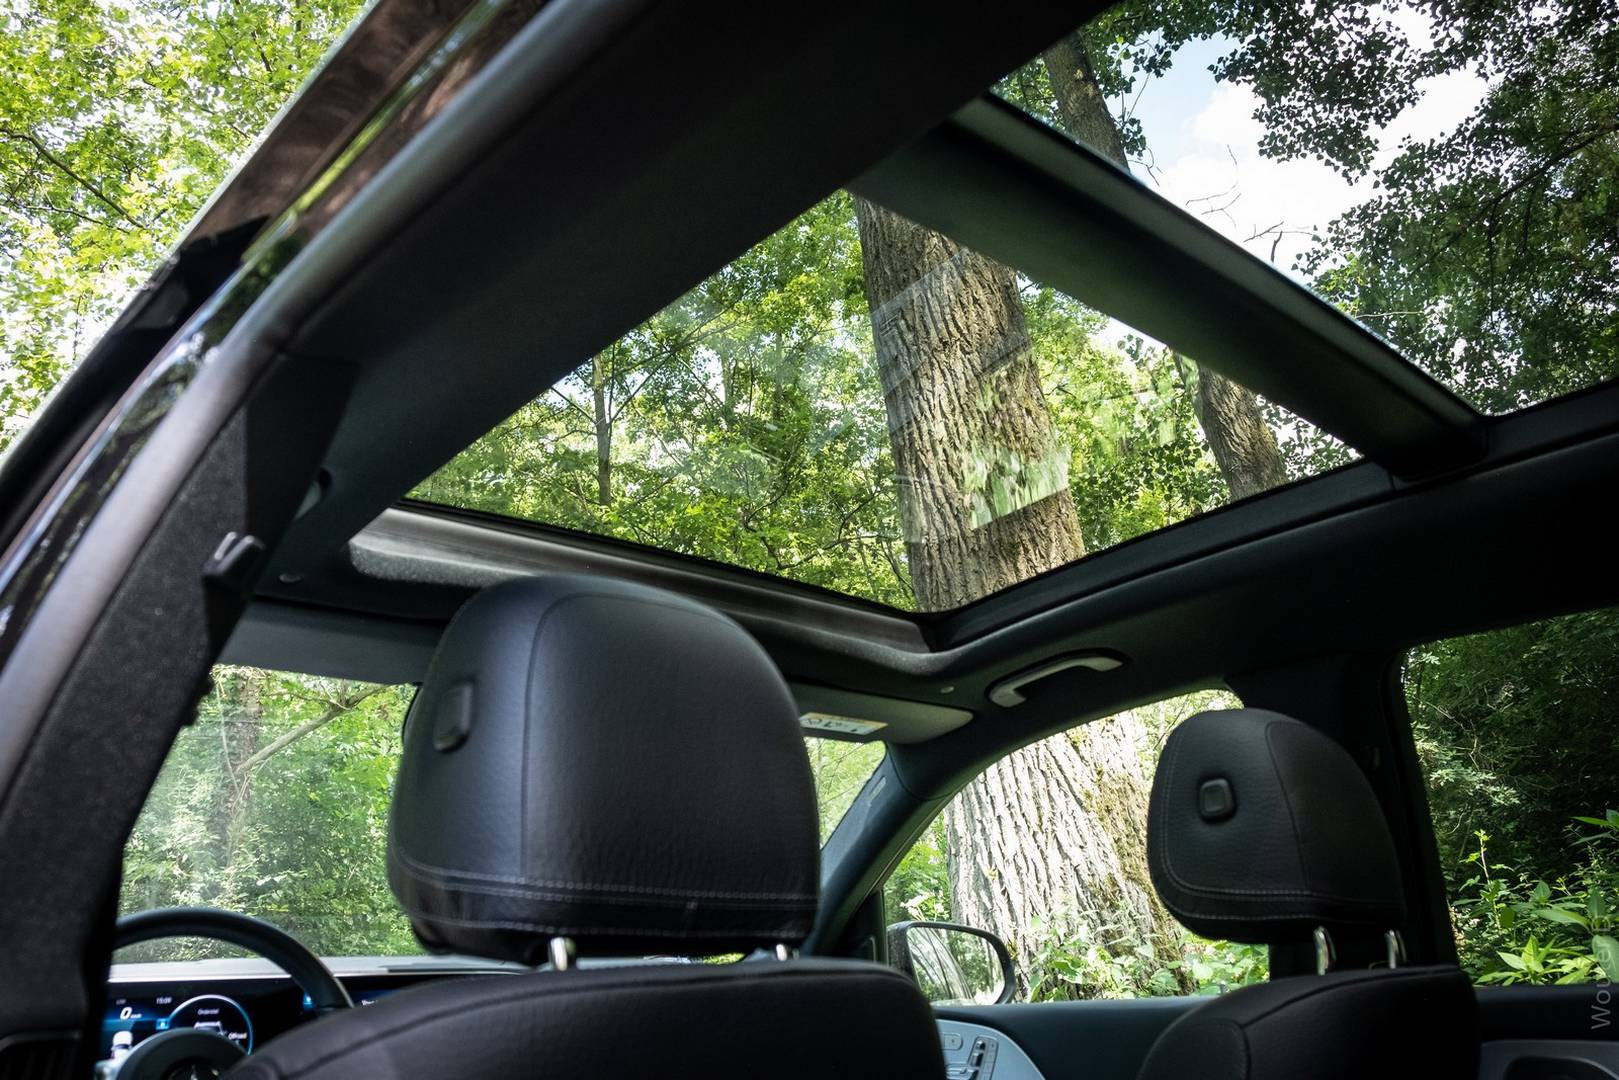 Mercedes-Benz GLS 400d Panoramic Roof